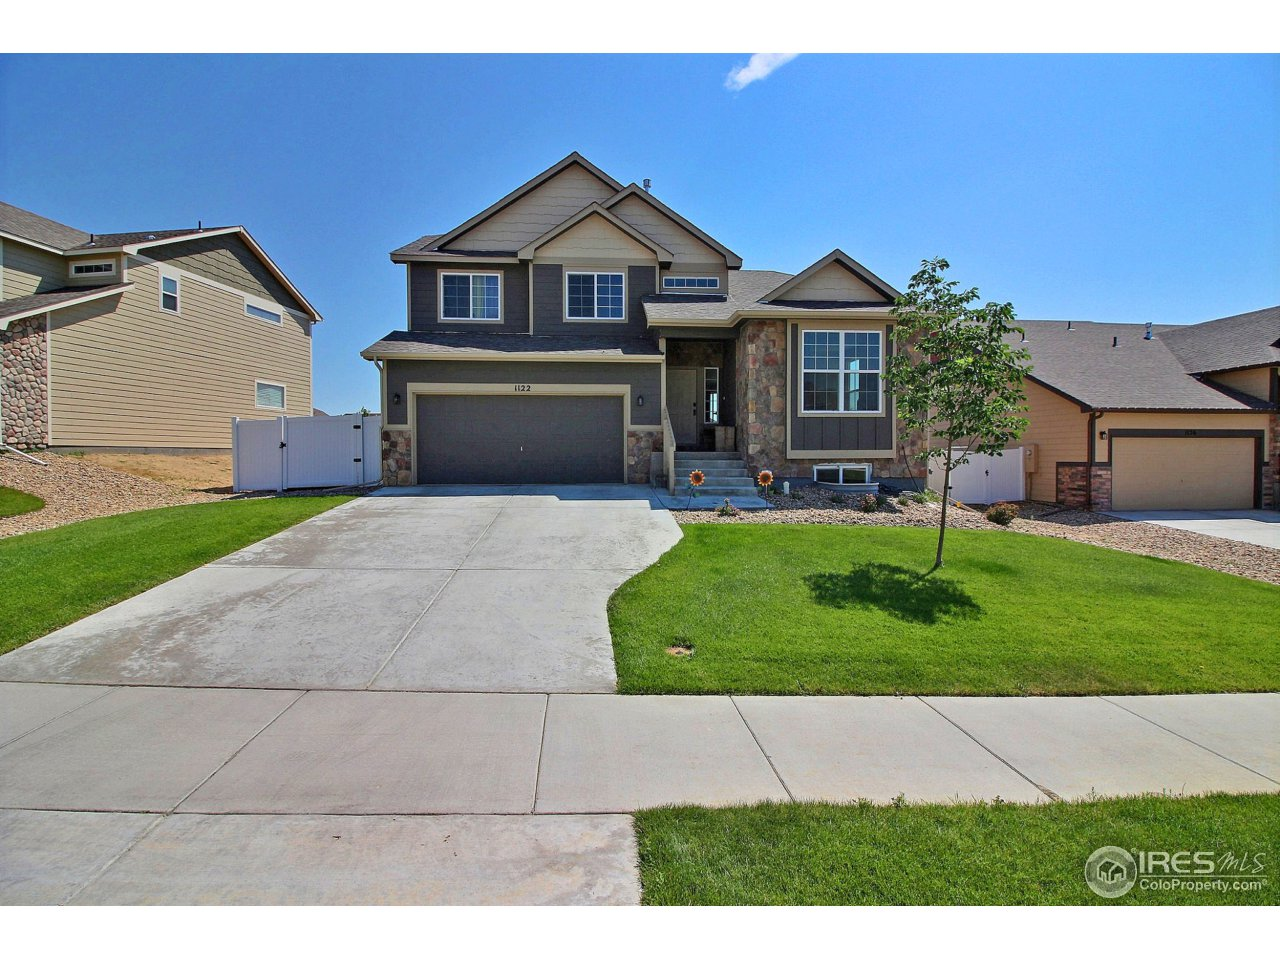 1122 78th Ave Ct, Greeley CO 80634